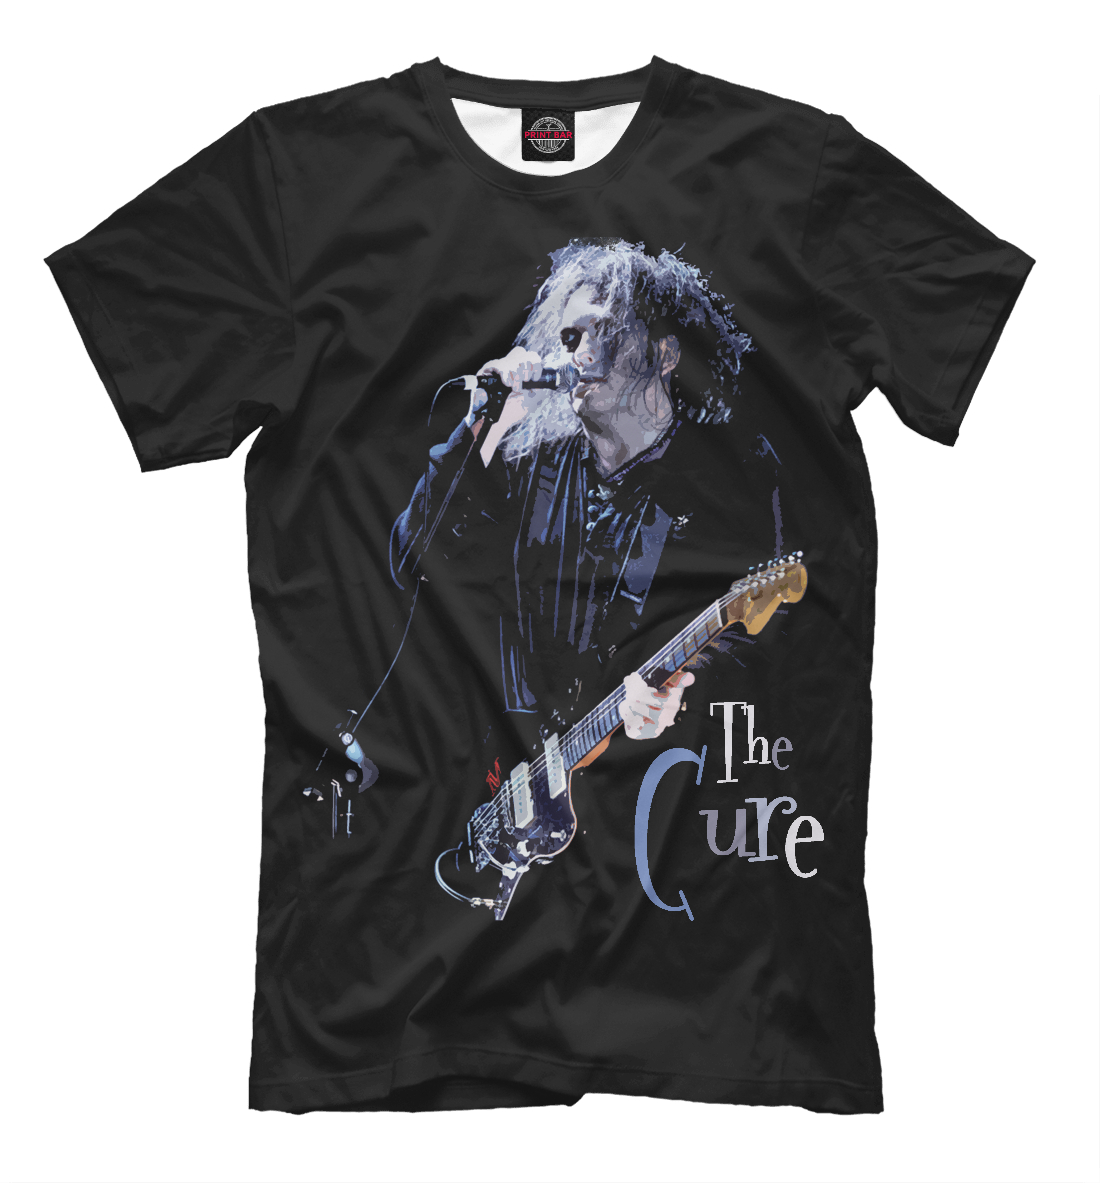 Купить THE CURE. ROBERT SMITH, Printbar, Футболки, THC-250212-fut-2